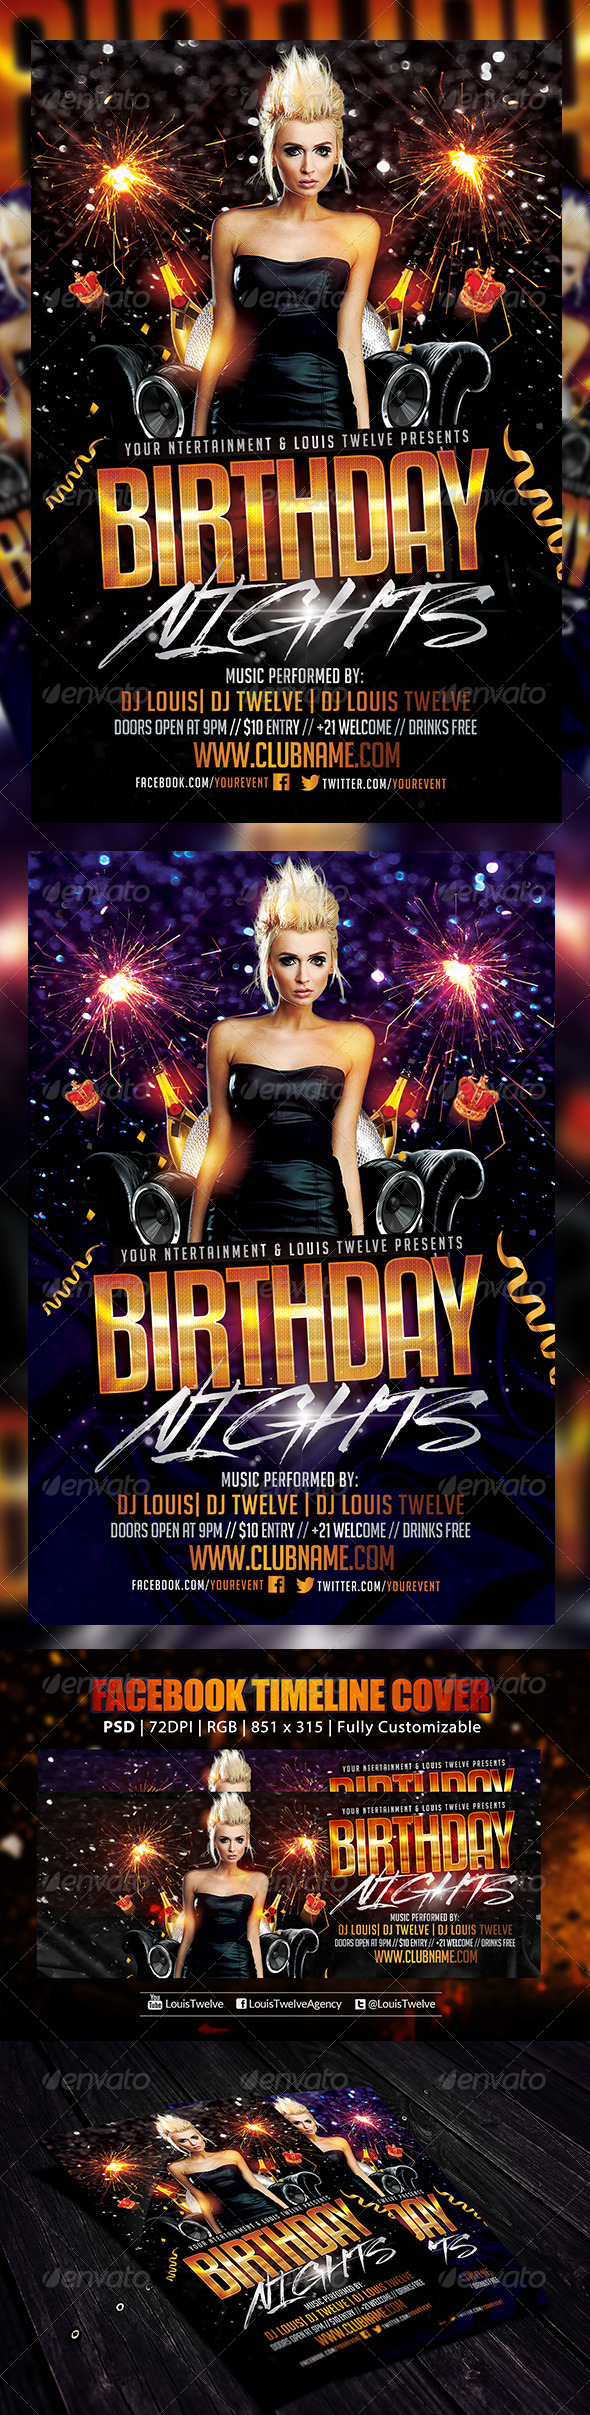 Birthday Nights | Flyer + FB Cover - Clubs & Parties Events